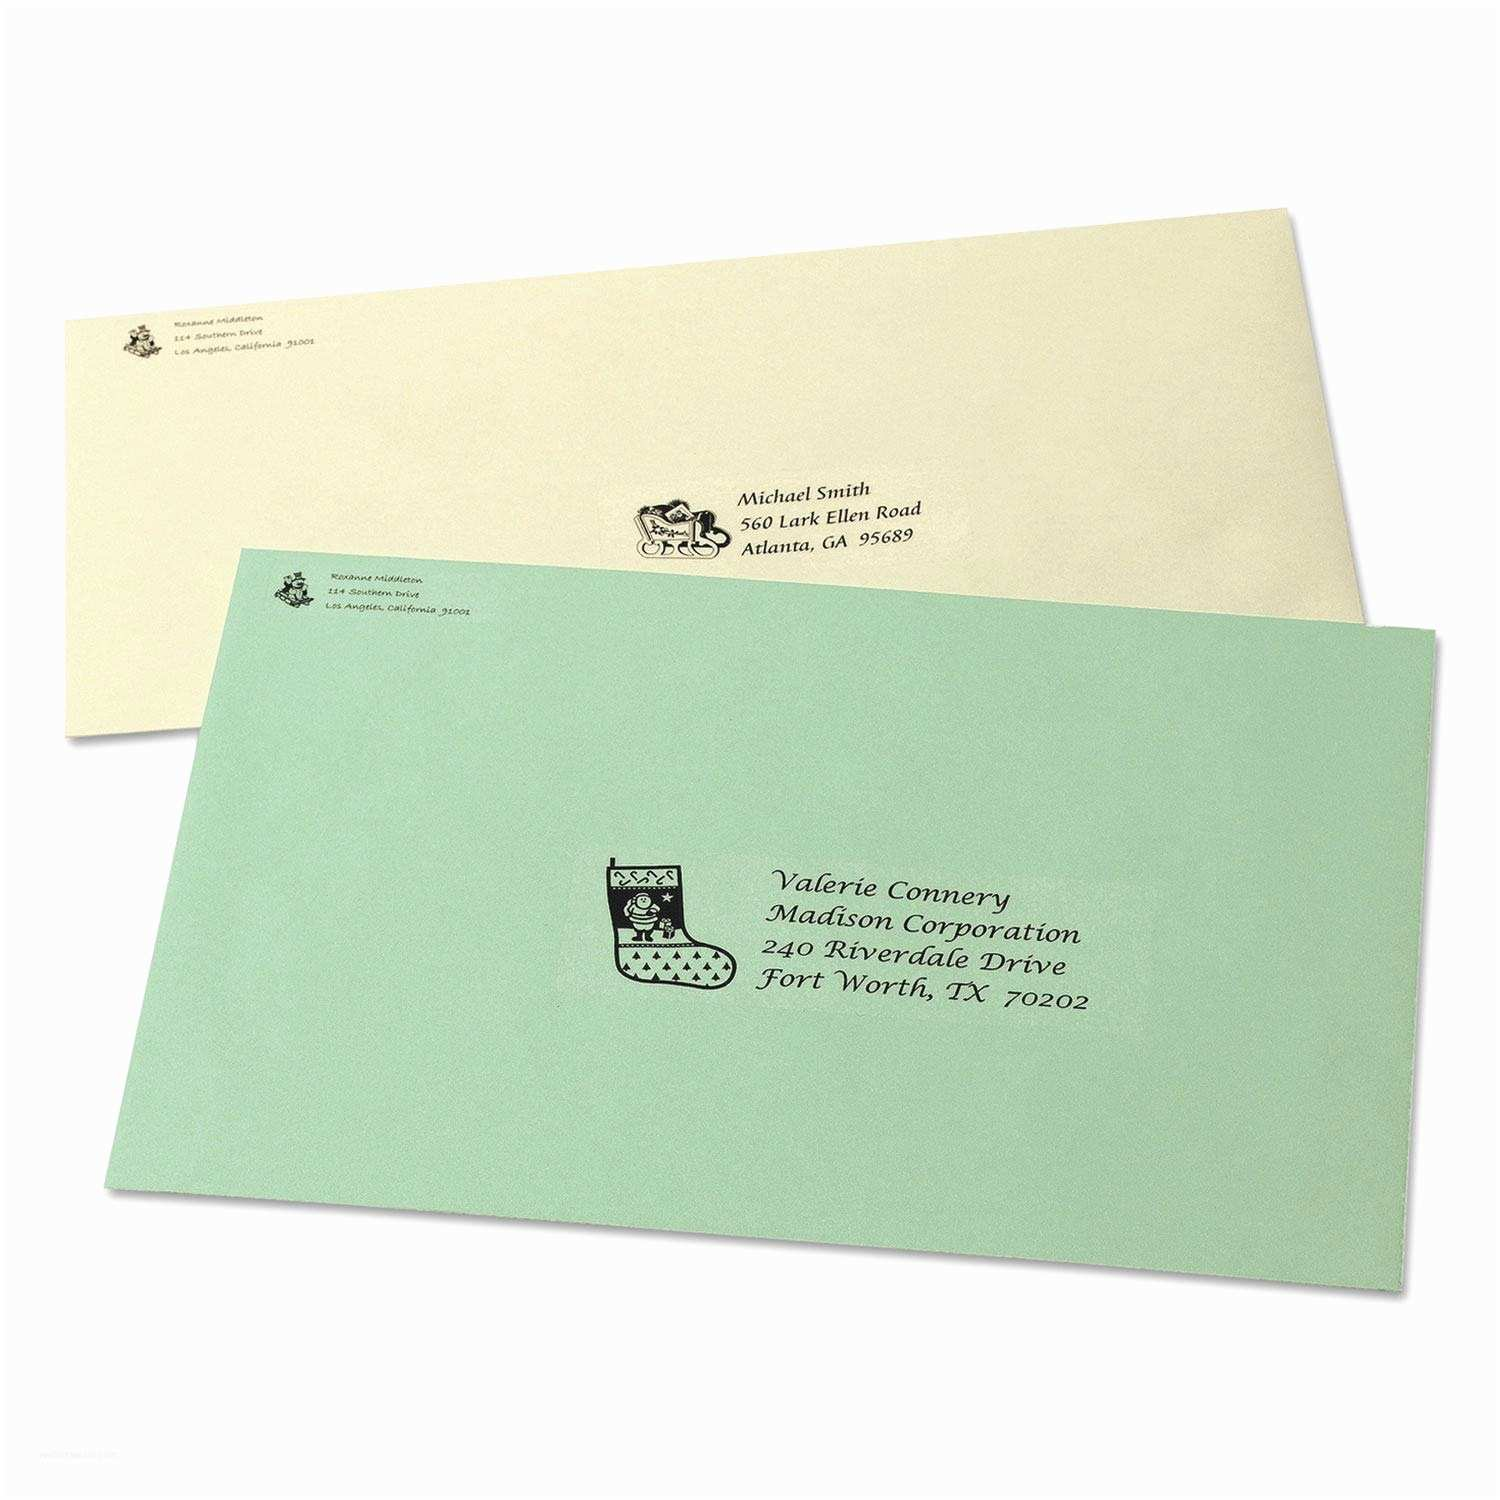 Clear Labels for Wedding Invitations Beautiful Clear Address Labels Wedding Ideas Styles